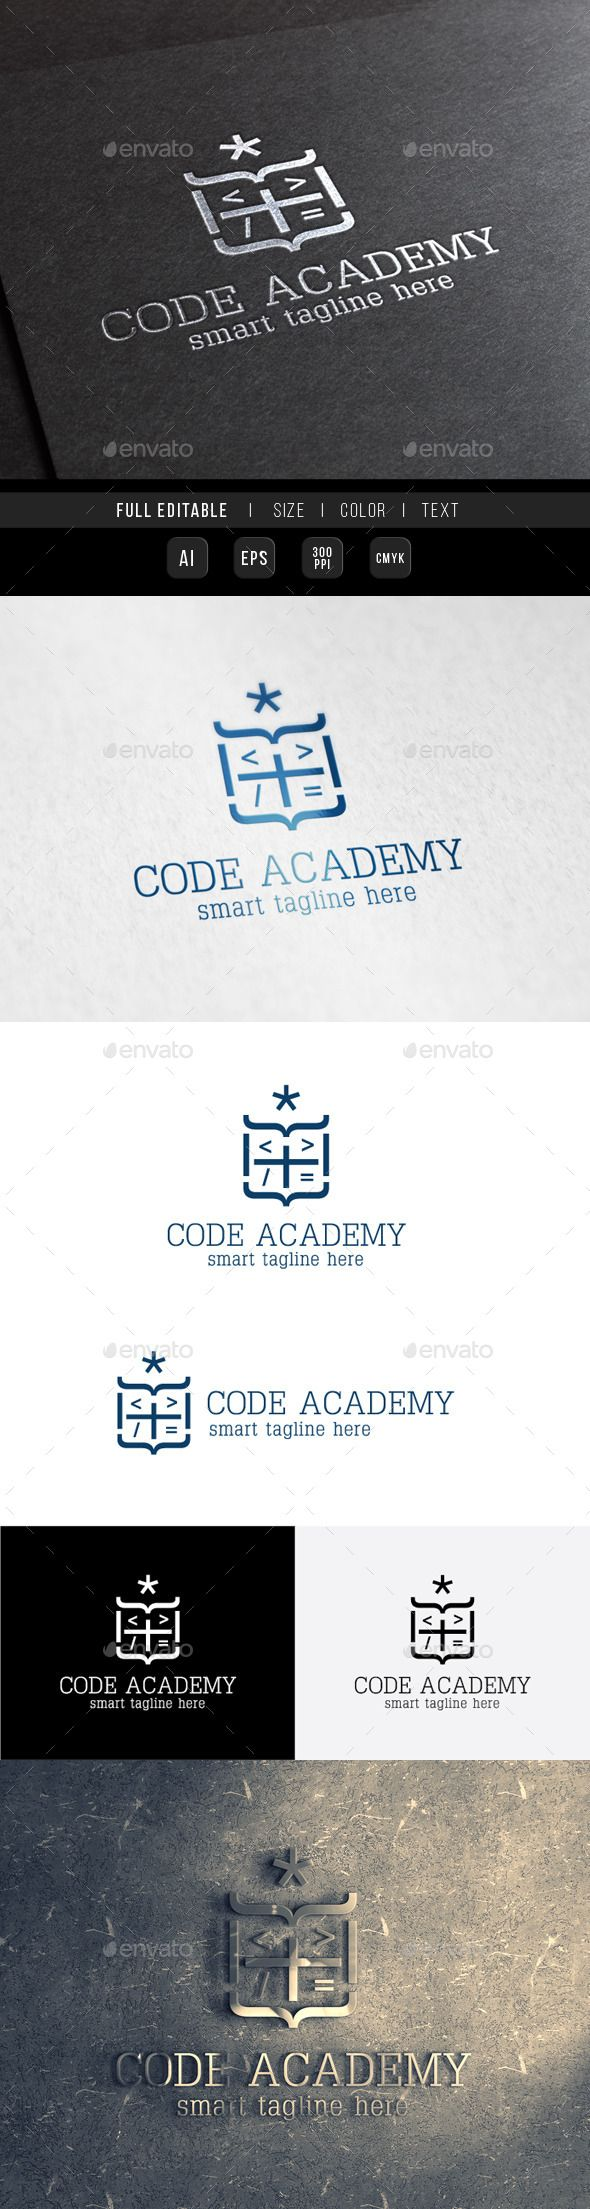 Royal King Code Academy — Vector EPS #web school #university • Available here → https://graphicriver.net/item/royal-king-code-academy/9966206?ref=pxcr